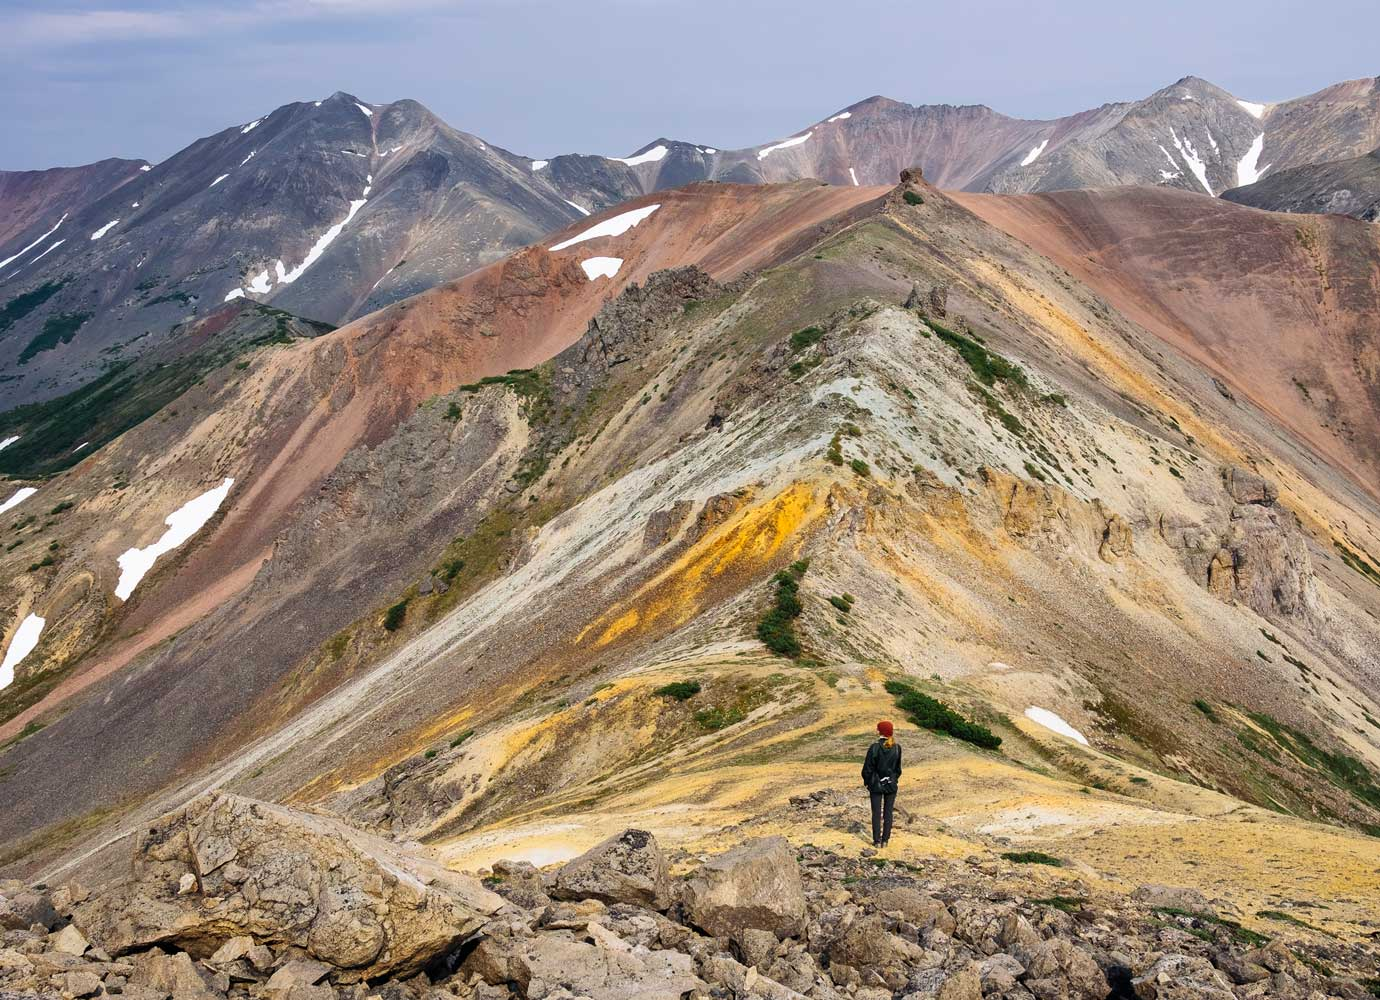 Where the road ends: one man's quest to capture the magnetism of Magadan's mountainscapes